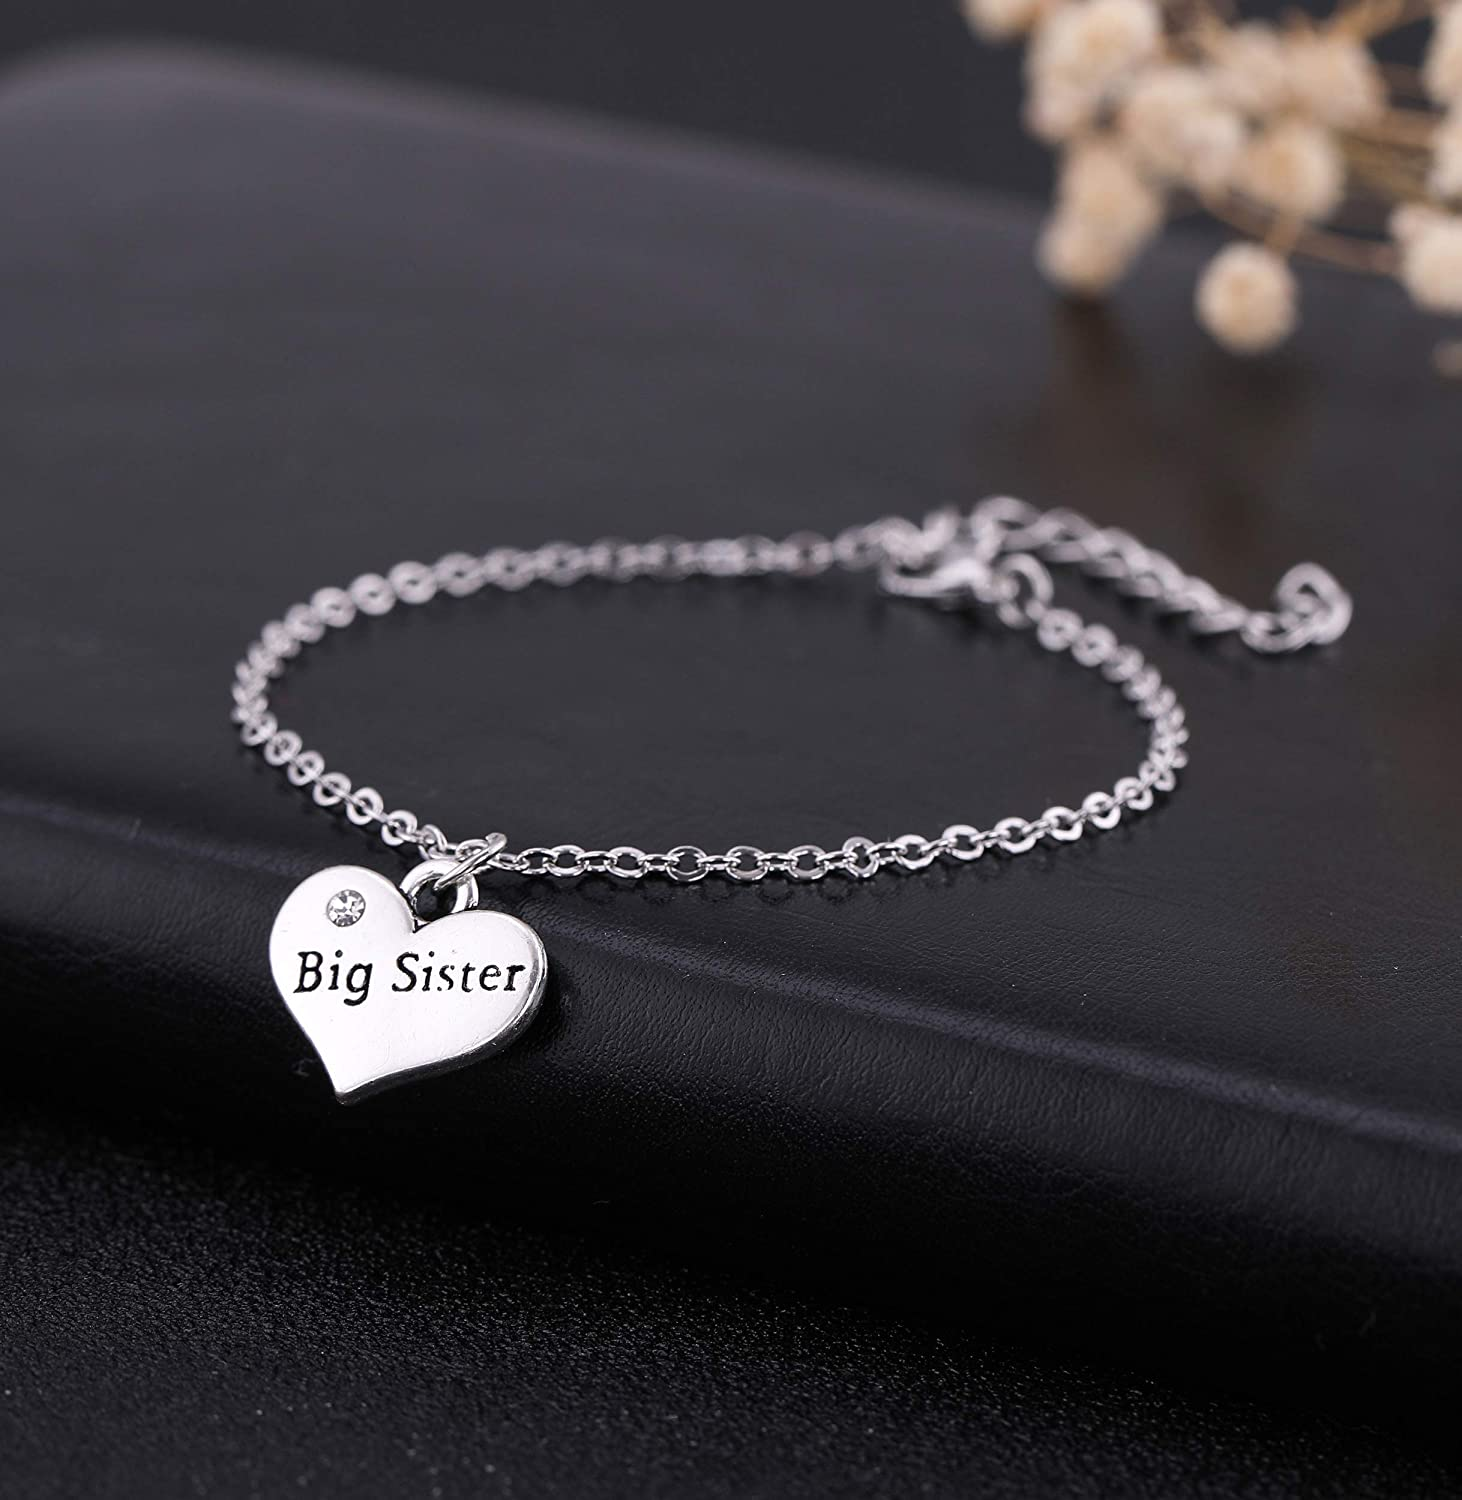 cooltime Silver Heart-Shaped Little Sister-Middle Sister-Big Sister Charms Bracelet Birthday Gifts for Her